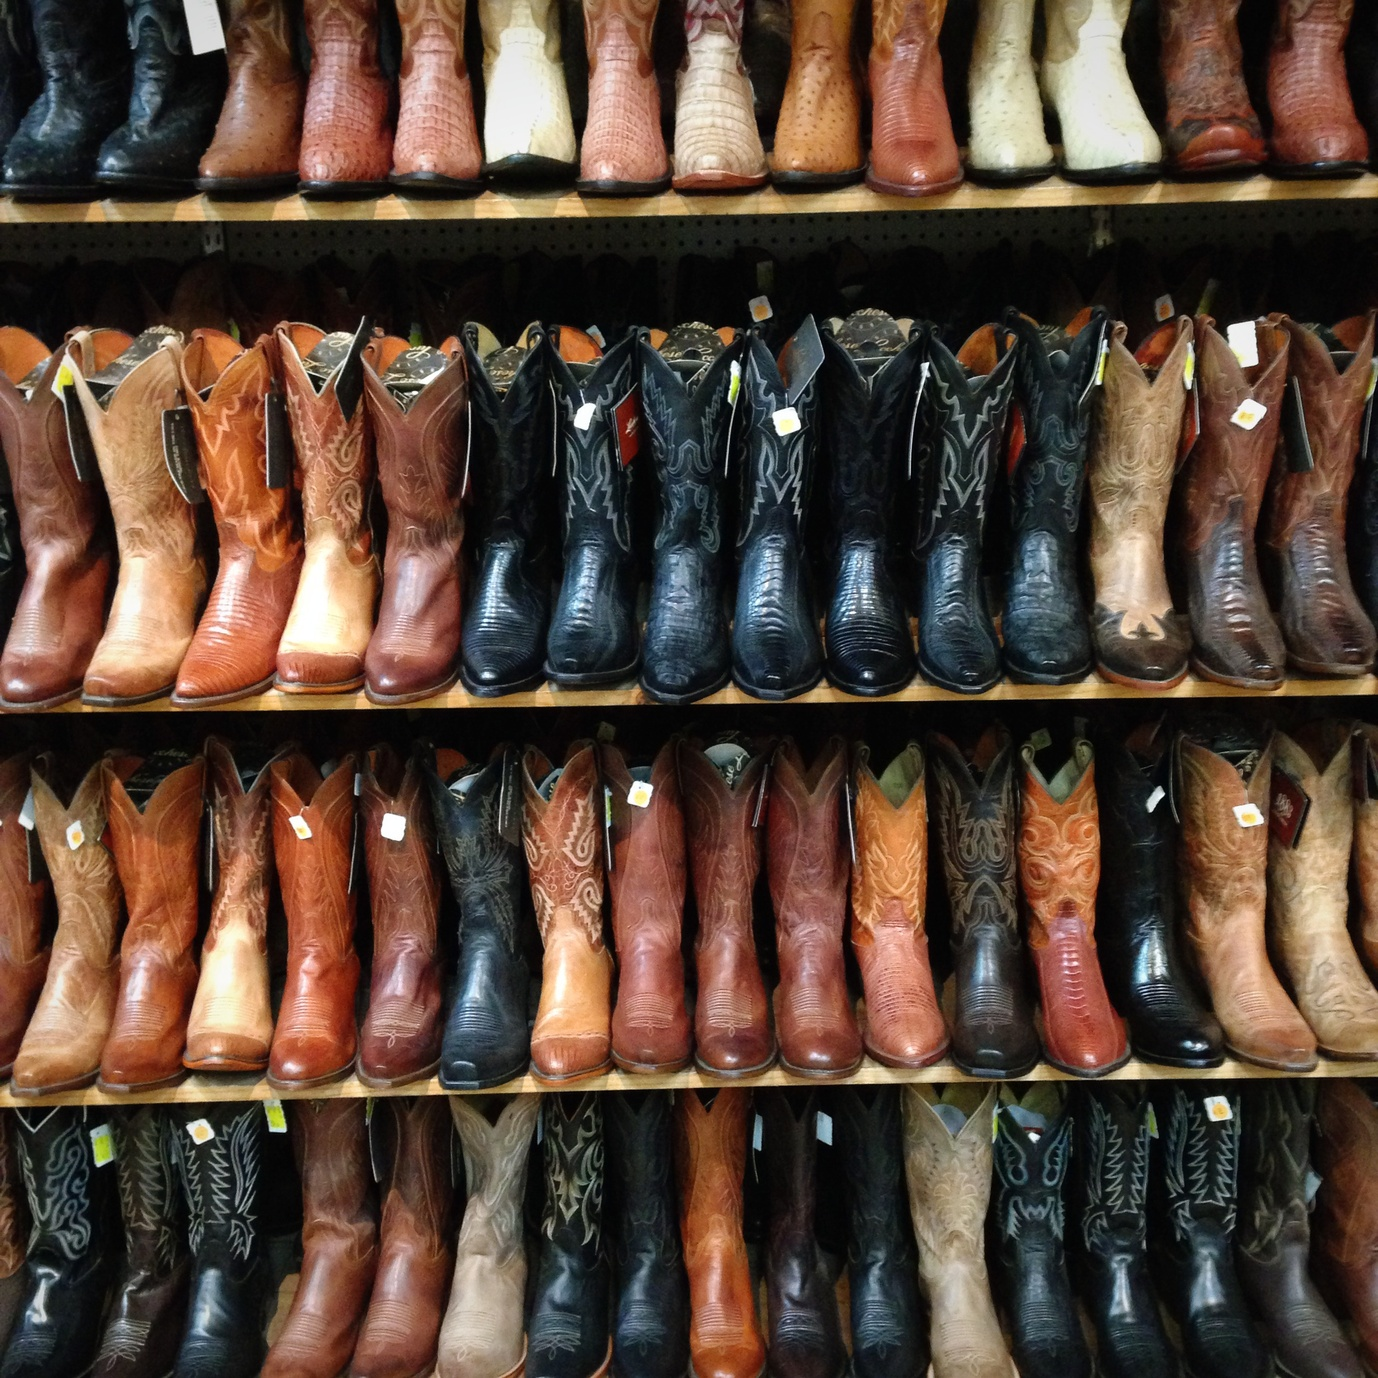 There are many high-fashion boots out there, but caiman skin stands out as an attractive and distinct material.